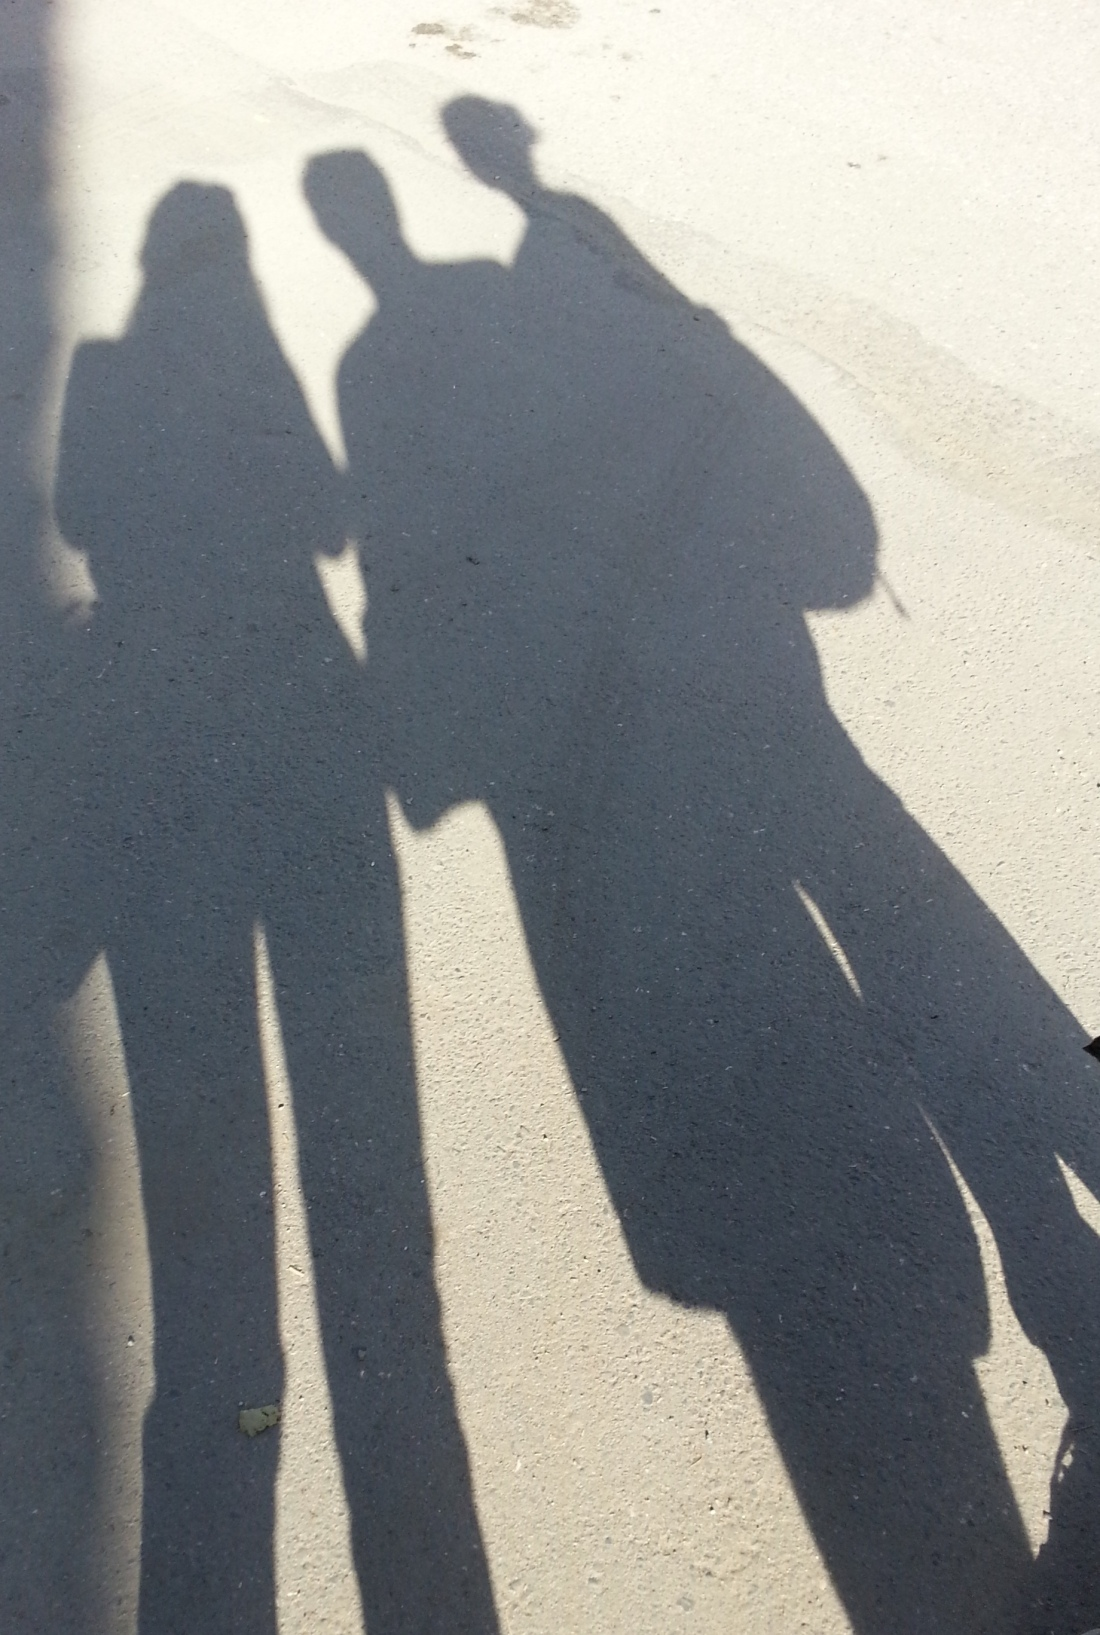 Our Shadow Selves